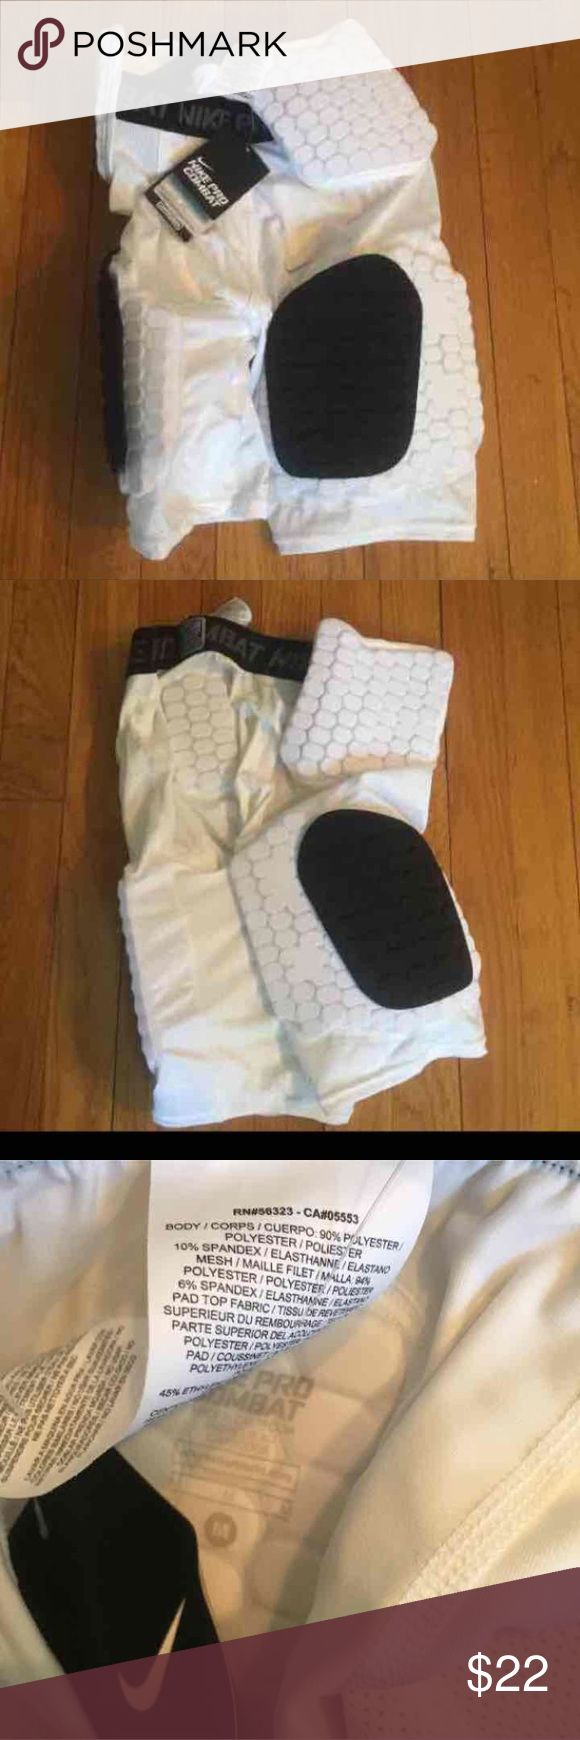 Nike Pro Combat Compression Shorts Nike Pro Combat compression shorts.   Boys Medium. Would fit a men's small.   White.   New with tags.   Perfect for any contact sport like football or lacrosse Nike Bottoms